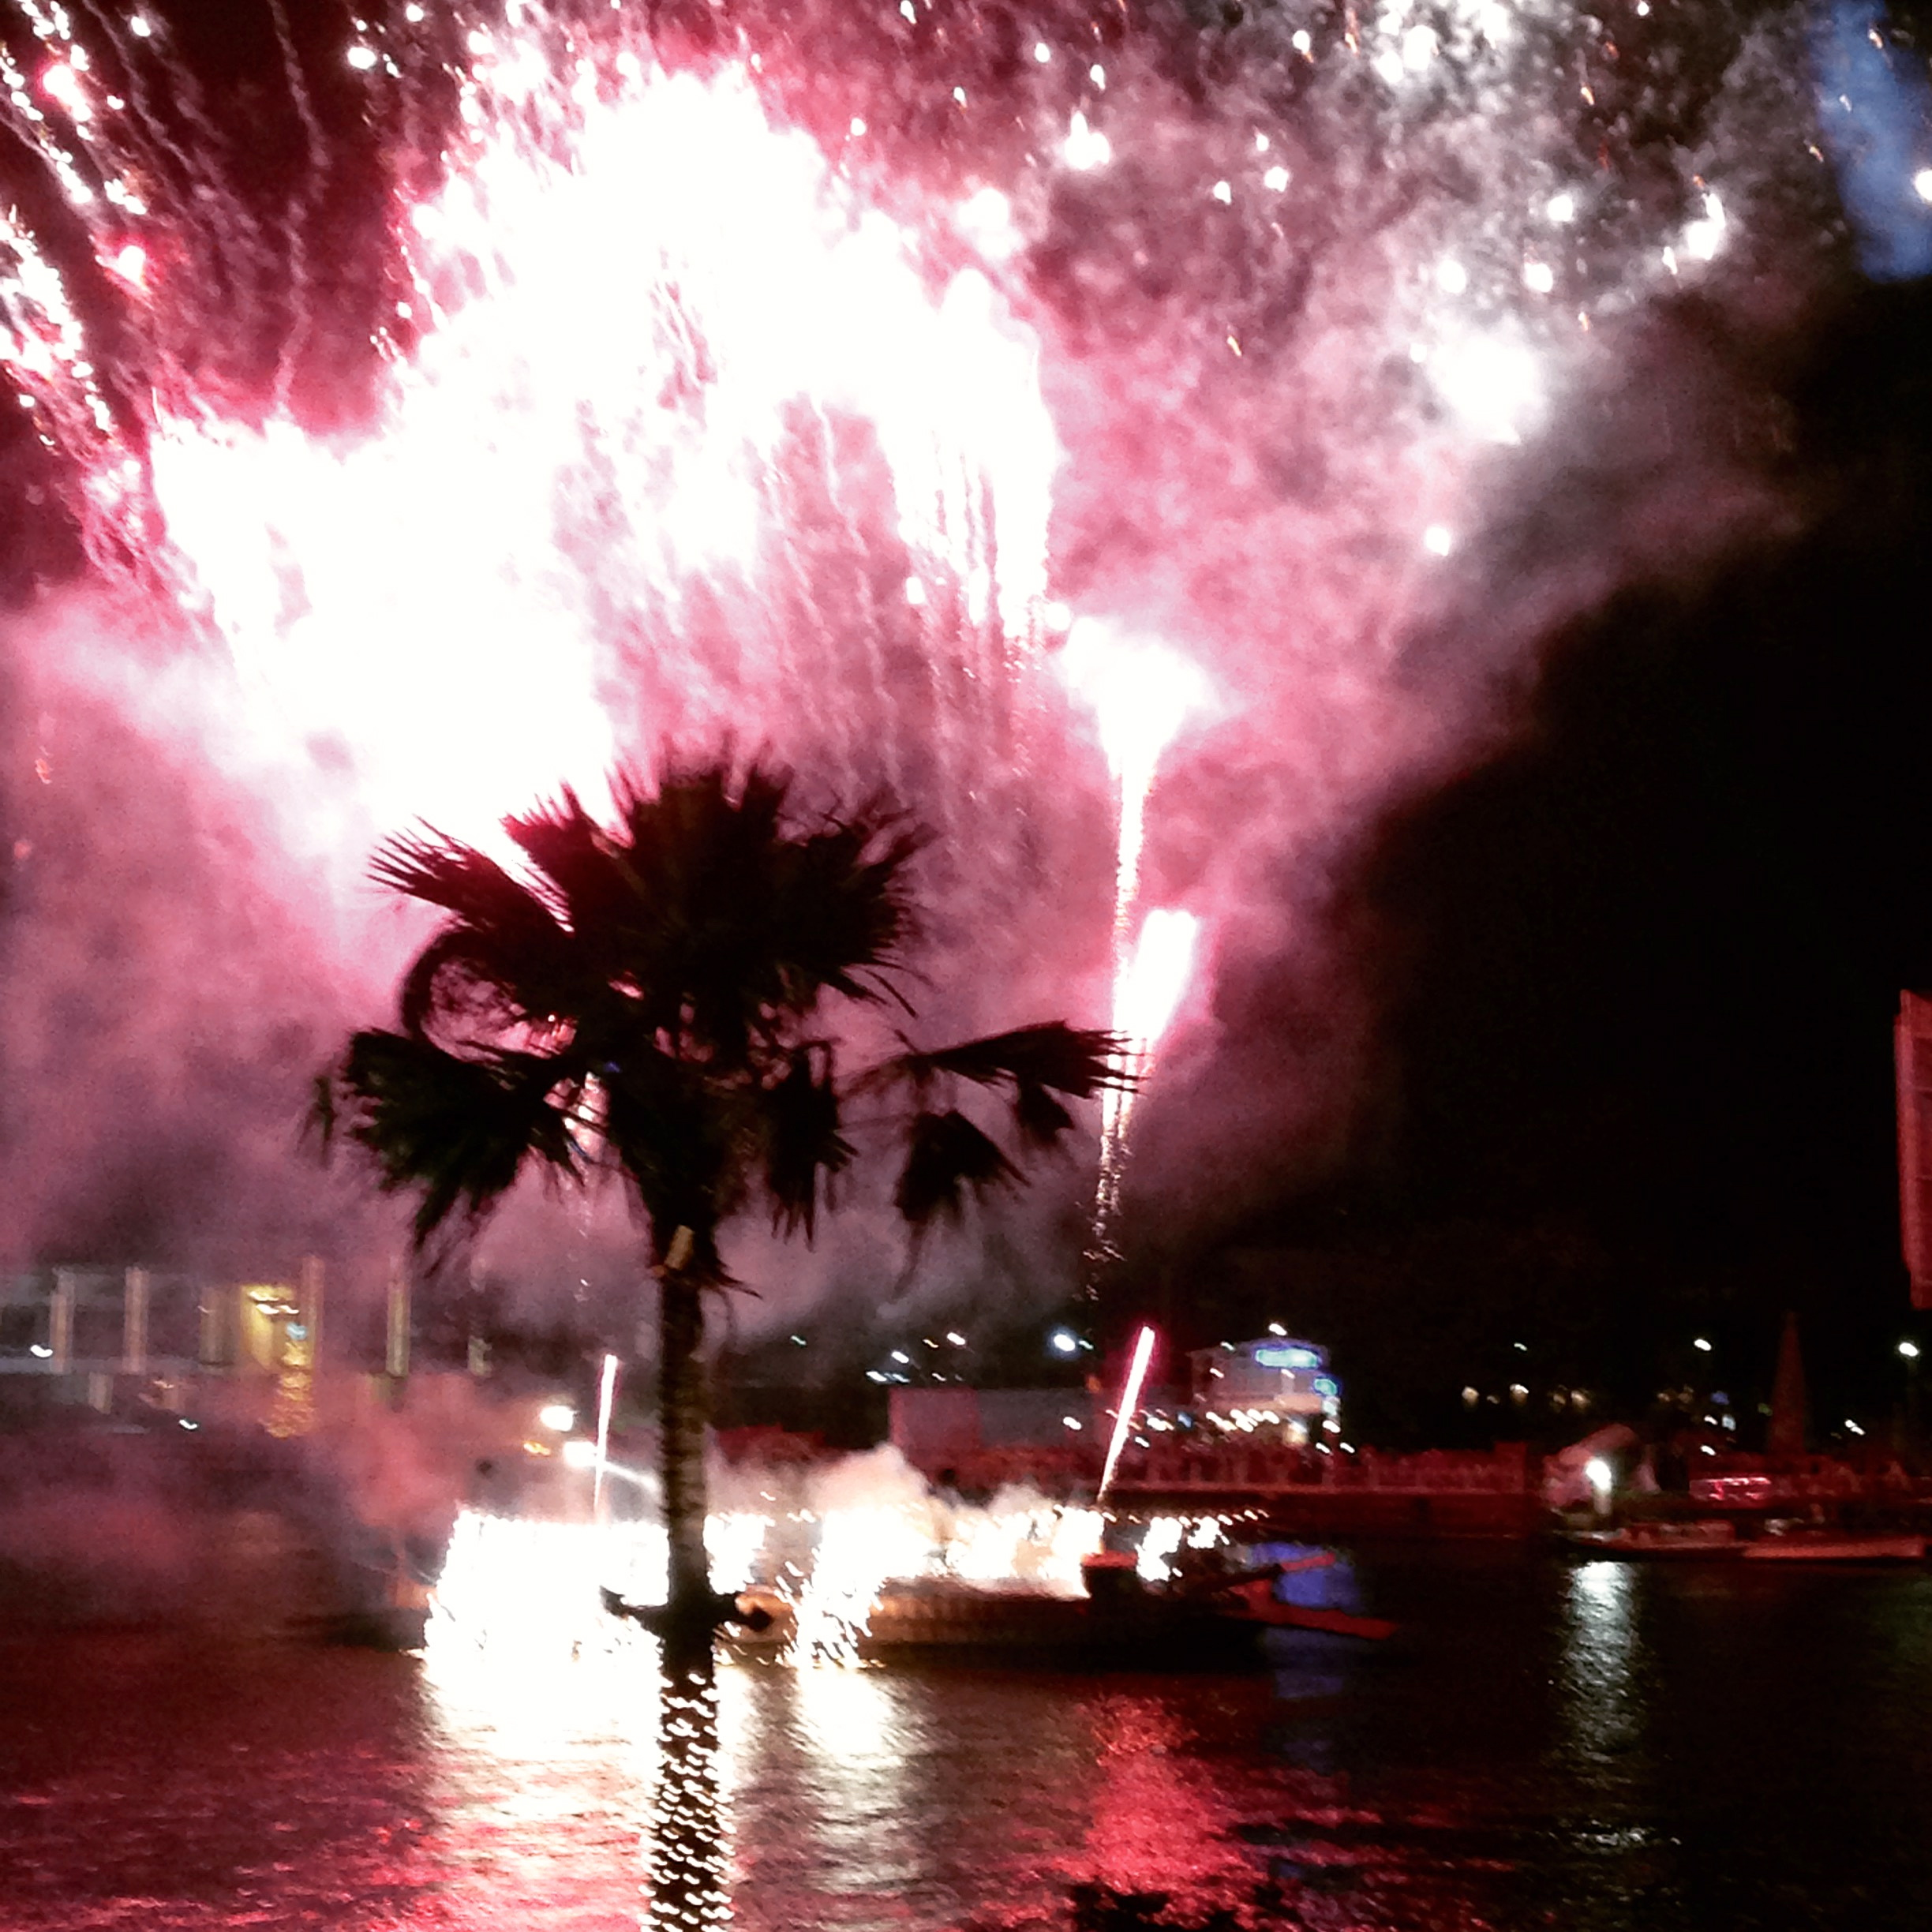 Royal Orchid Sheraton Bangkok New Year's Eve Fireworks Celebration Display on the Chao Phraya River